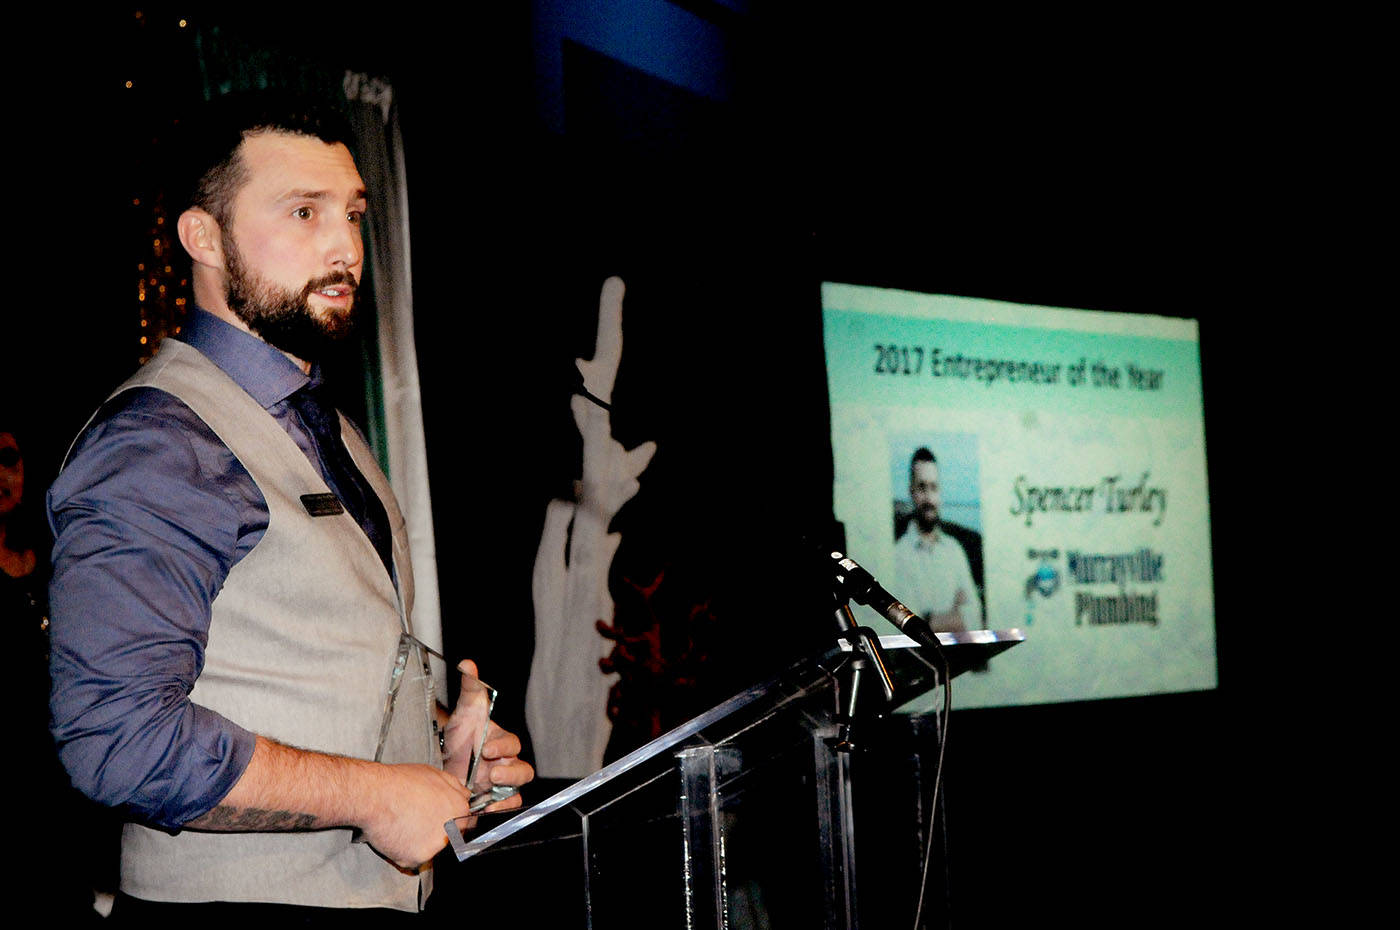 Murrayville Plumbing owner Spencer Turley was crowned 2017 Entrepreneur of the Year during the 21st annual Business Excellence Awards held Thursday, night at the Cascades convention centre ballroom. More photos at  www.langleytimes.com.                                Troy Landreville Langley Times